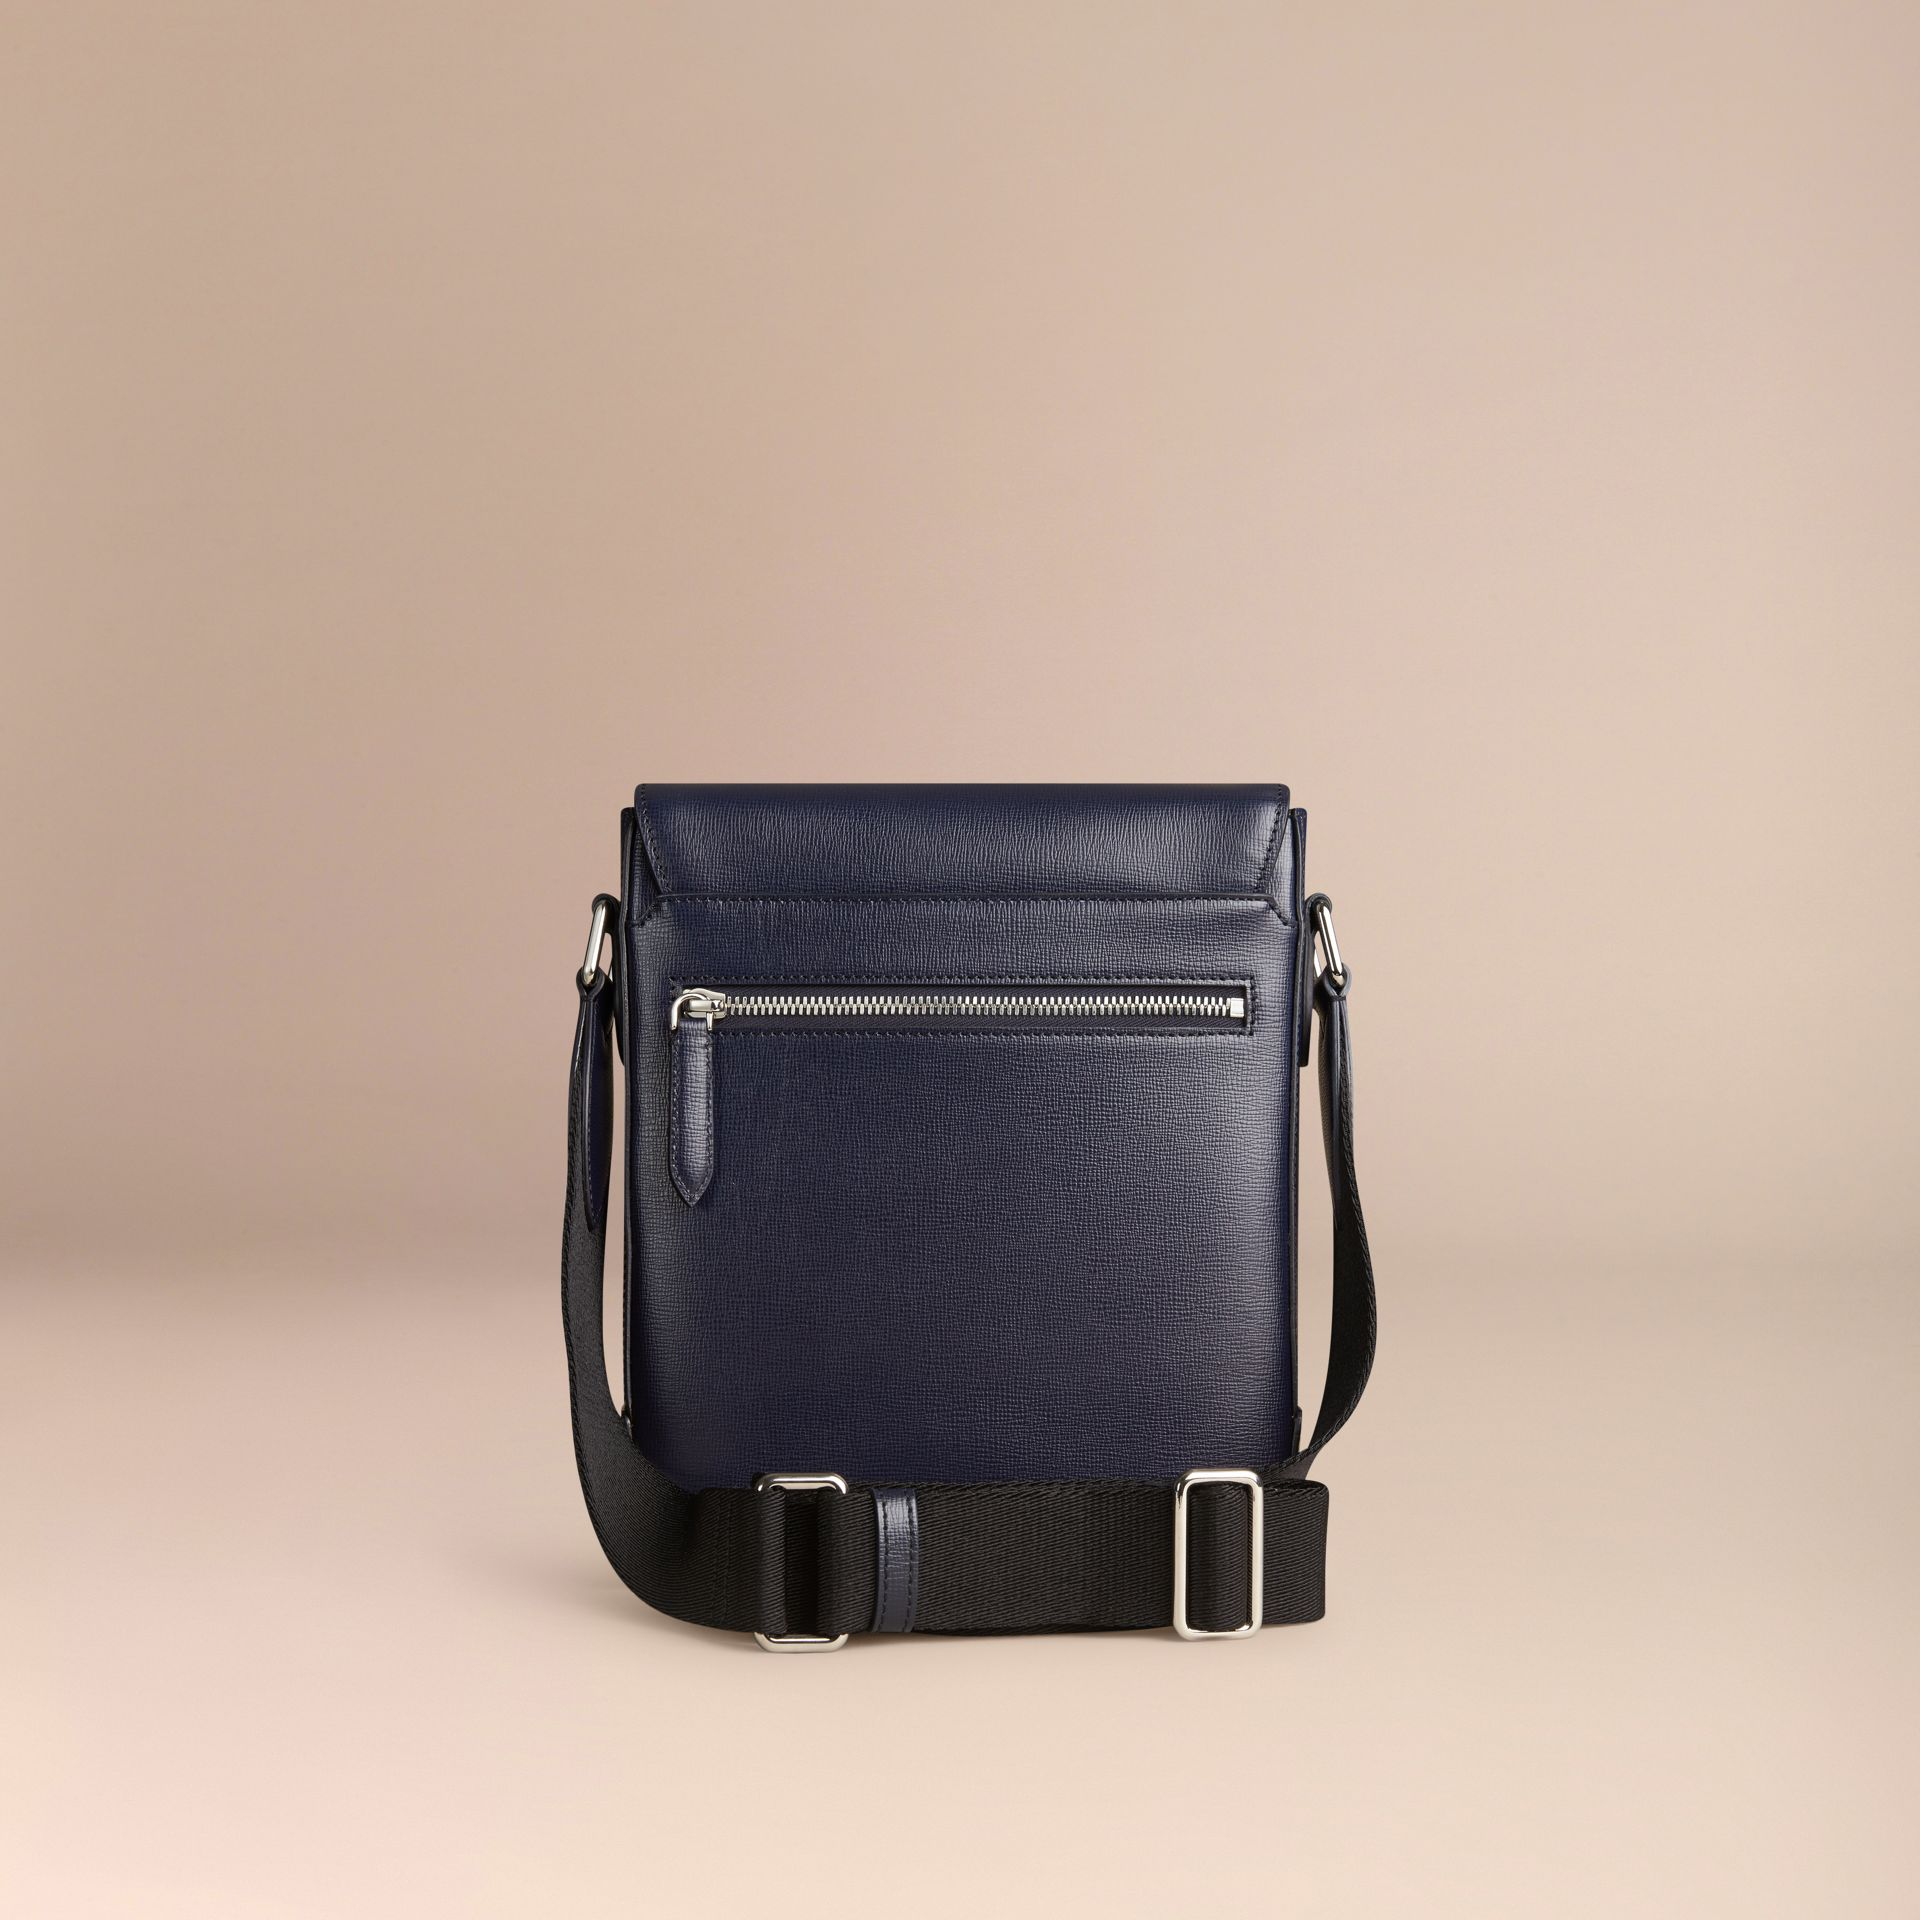 Dark navy London Leather Crossbody Bag Dark Navy - gallery image 4